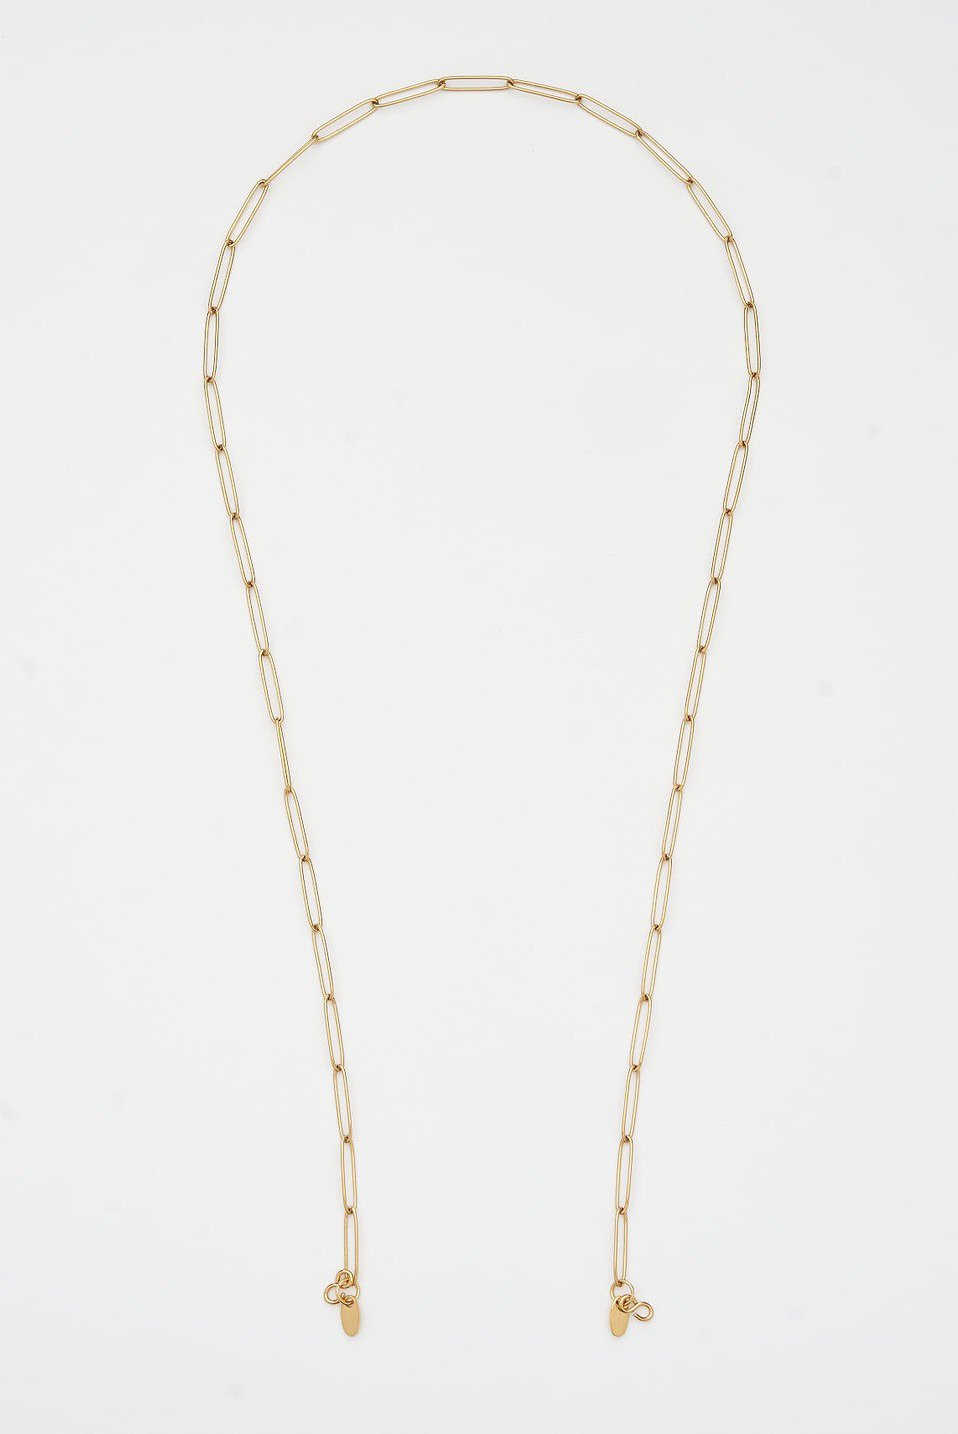 GOLD PAPERCLIP MASK CHAIN